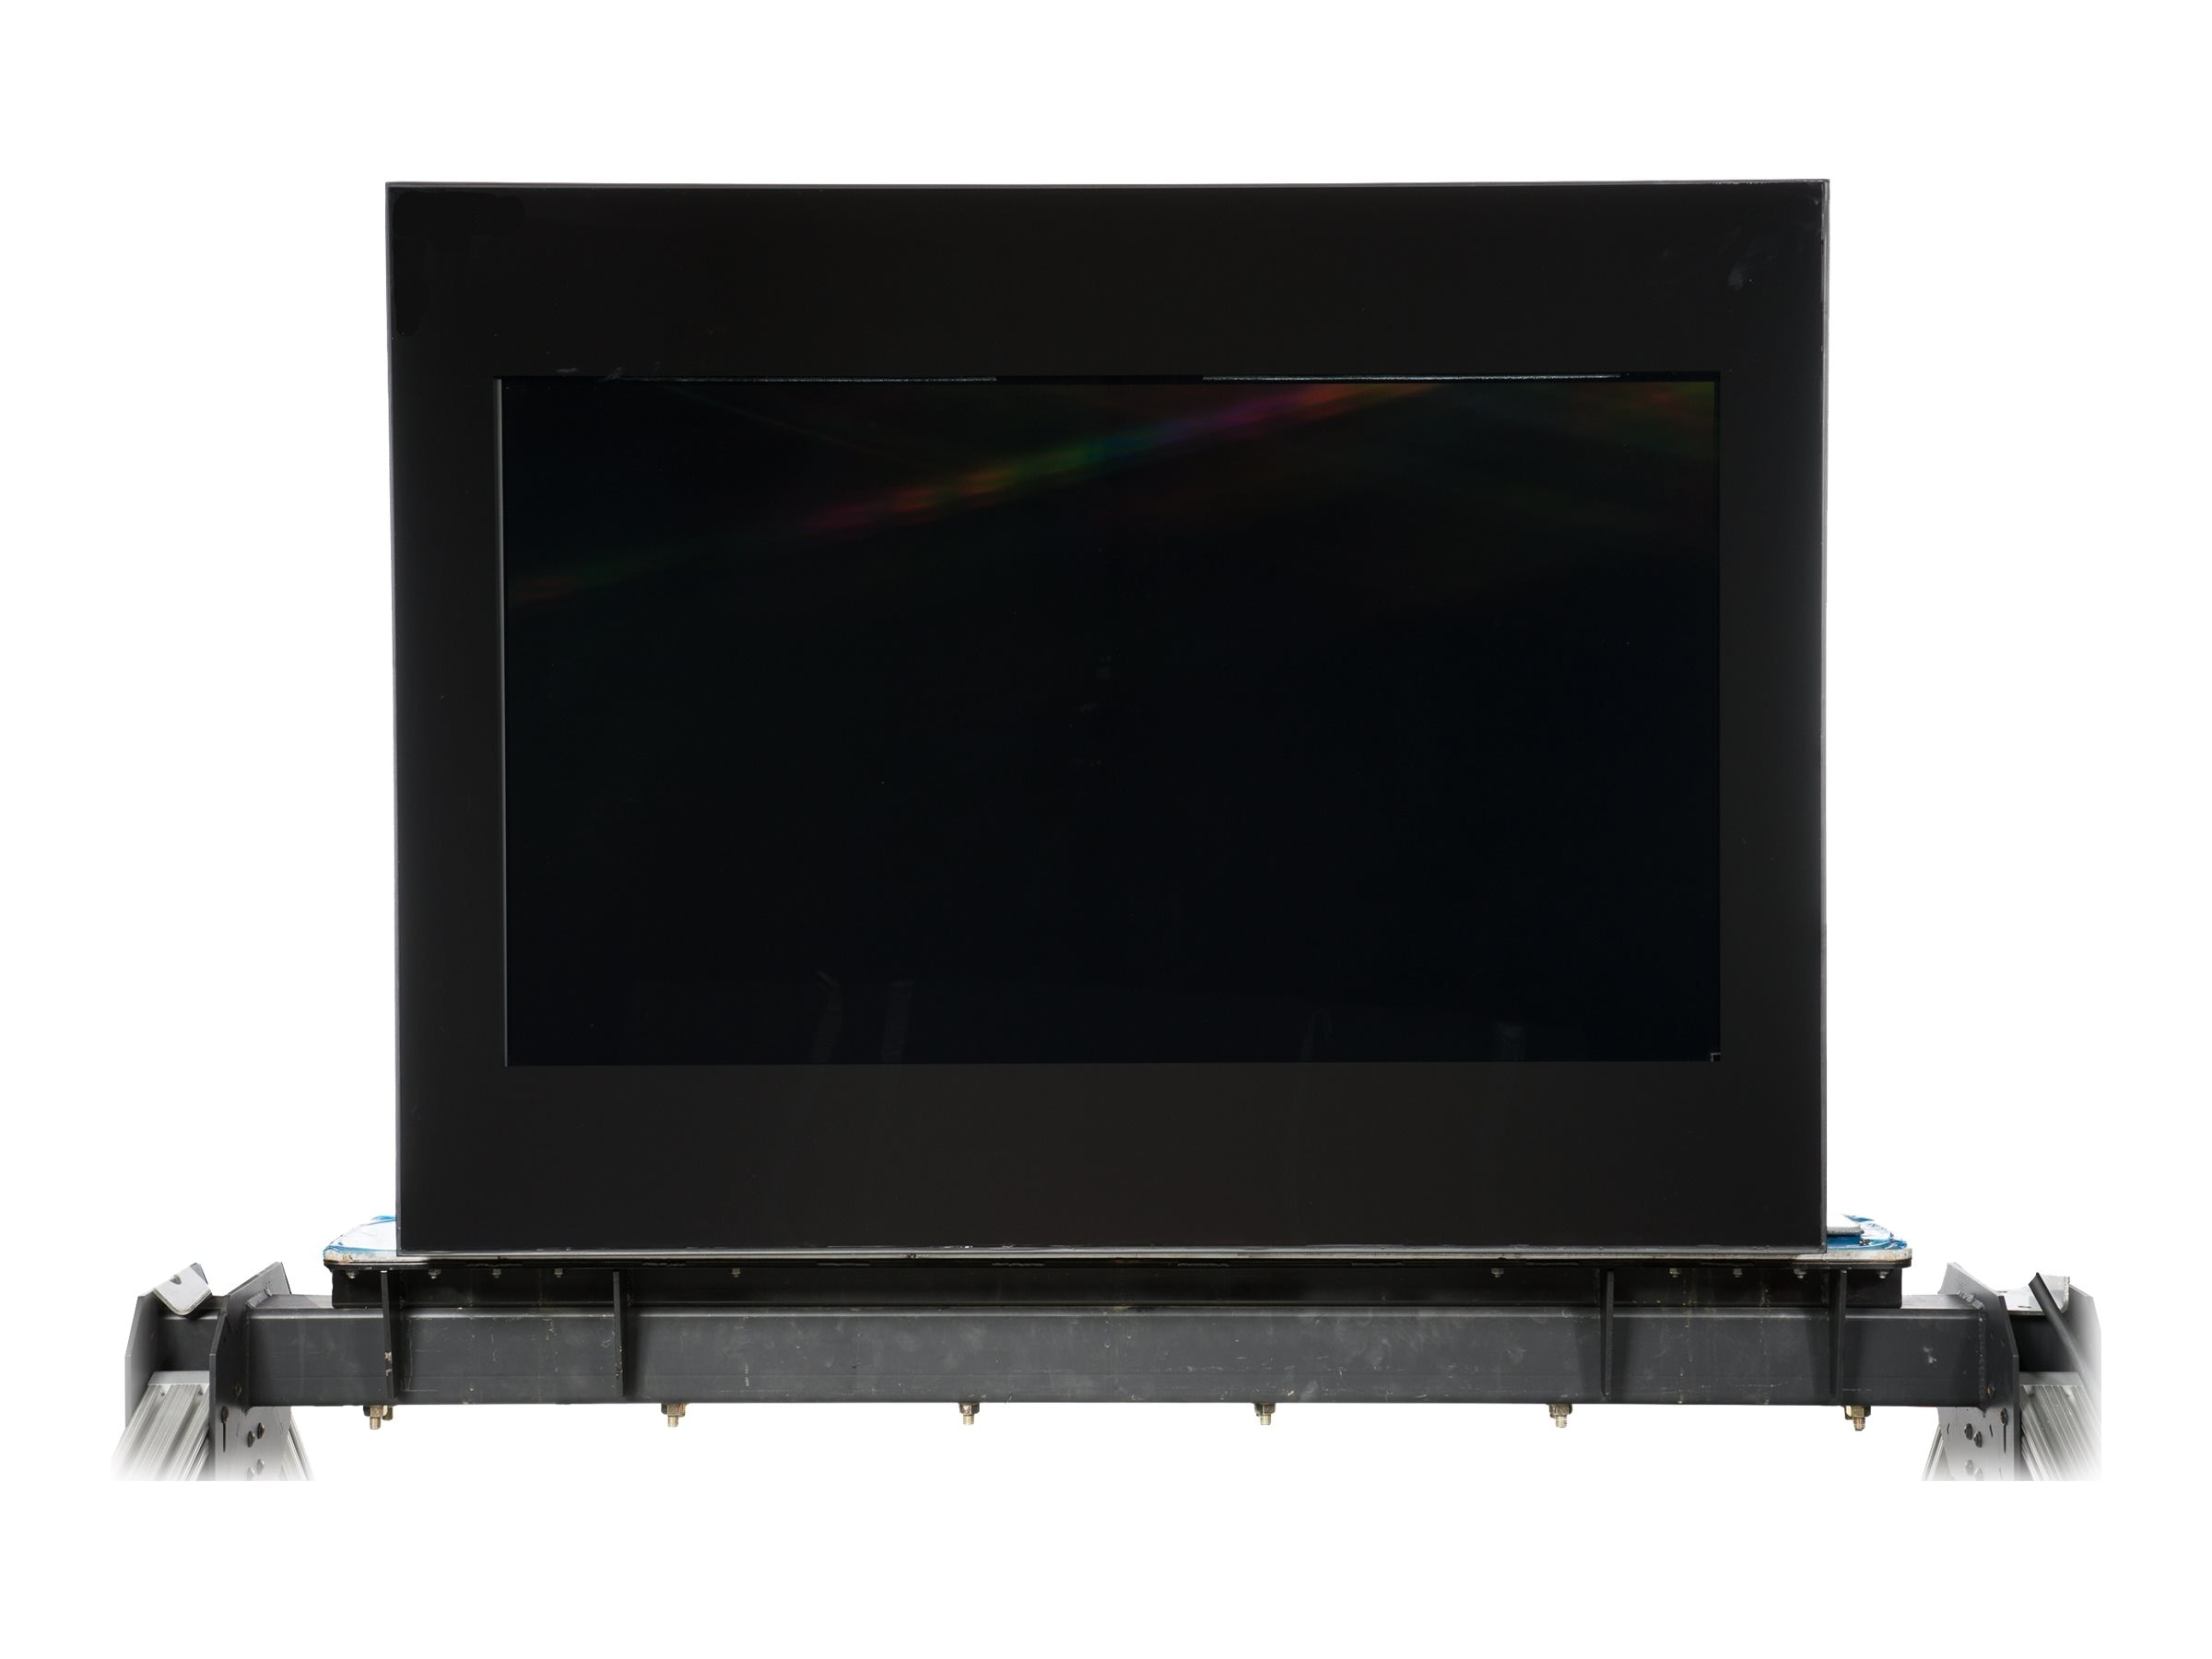 LG 84 UMD BoldVu Single Sided LCD Display, Portrait, BV84PSUAS0, 17858126, Monitors - Large-Format LCD